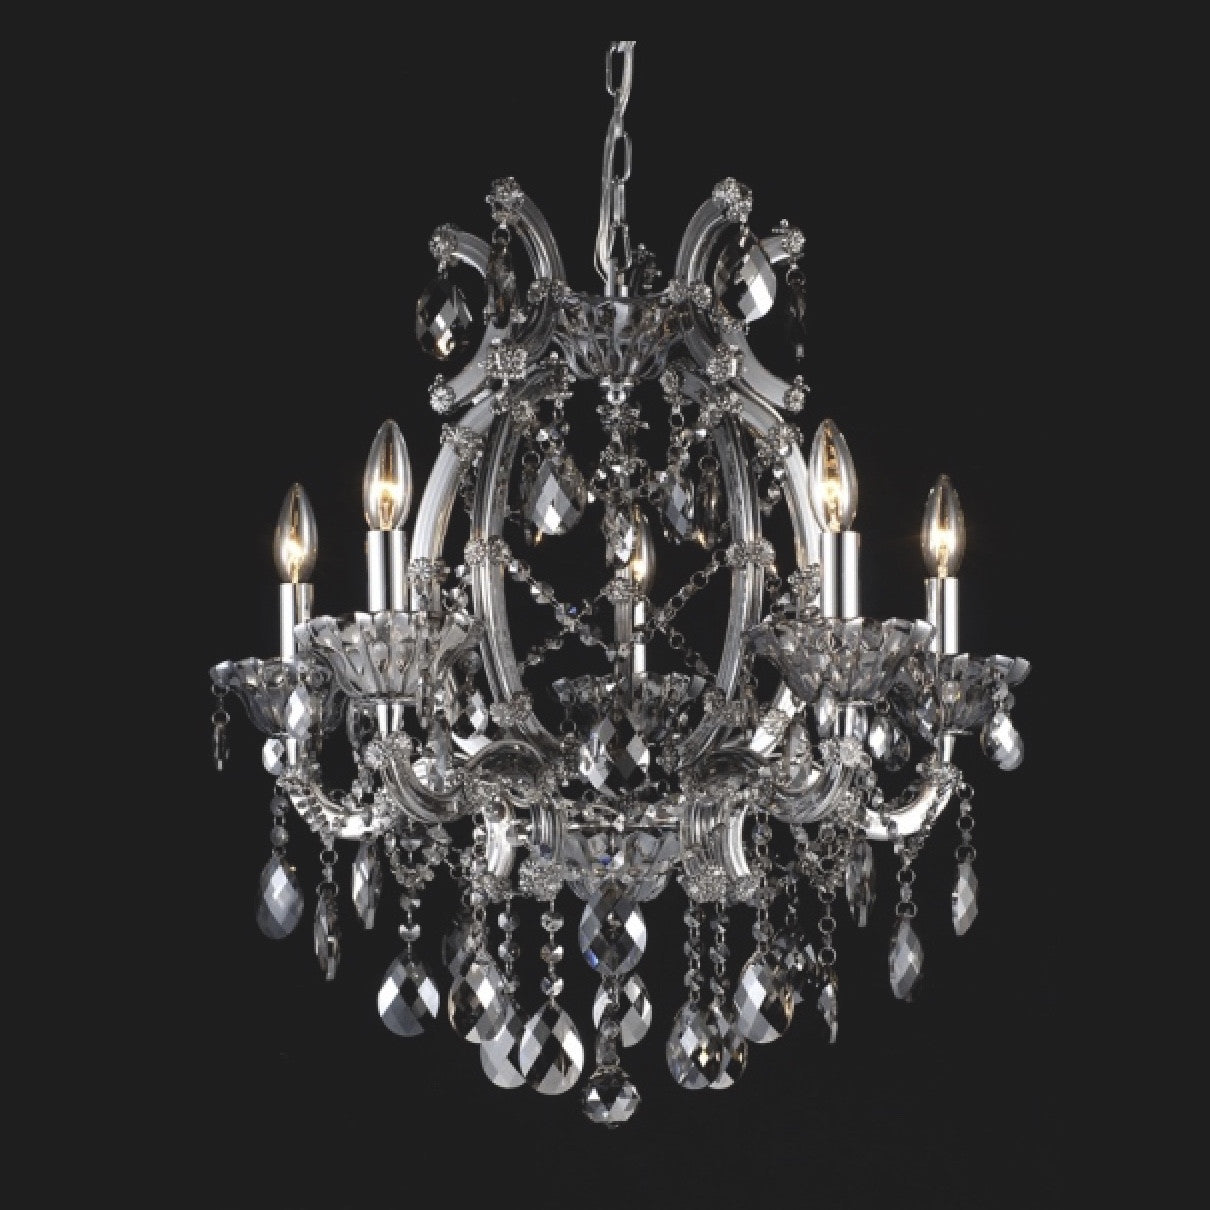 Smoke Crystal Chandelier - 5 Light, BI-Bethel International, Putti Fine Furnishings